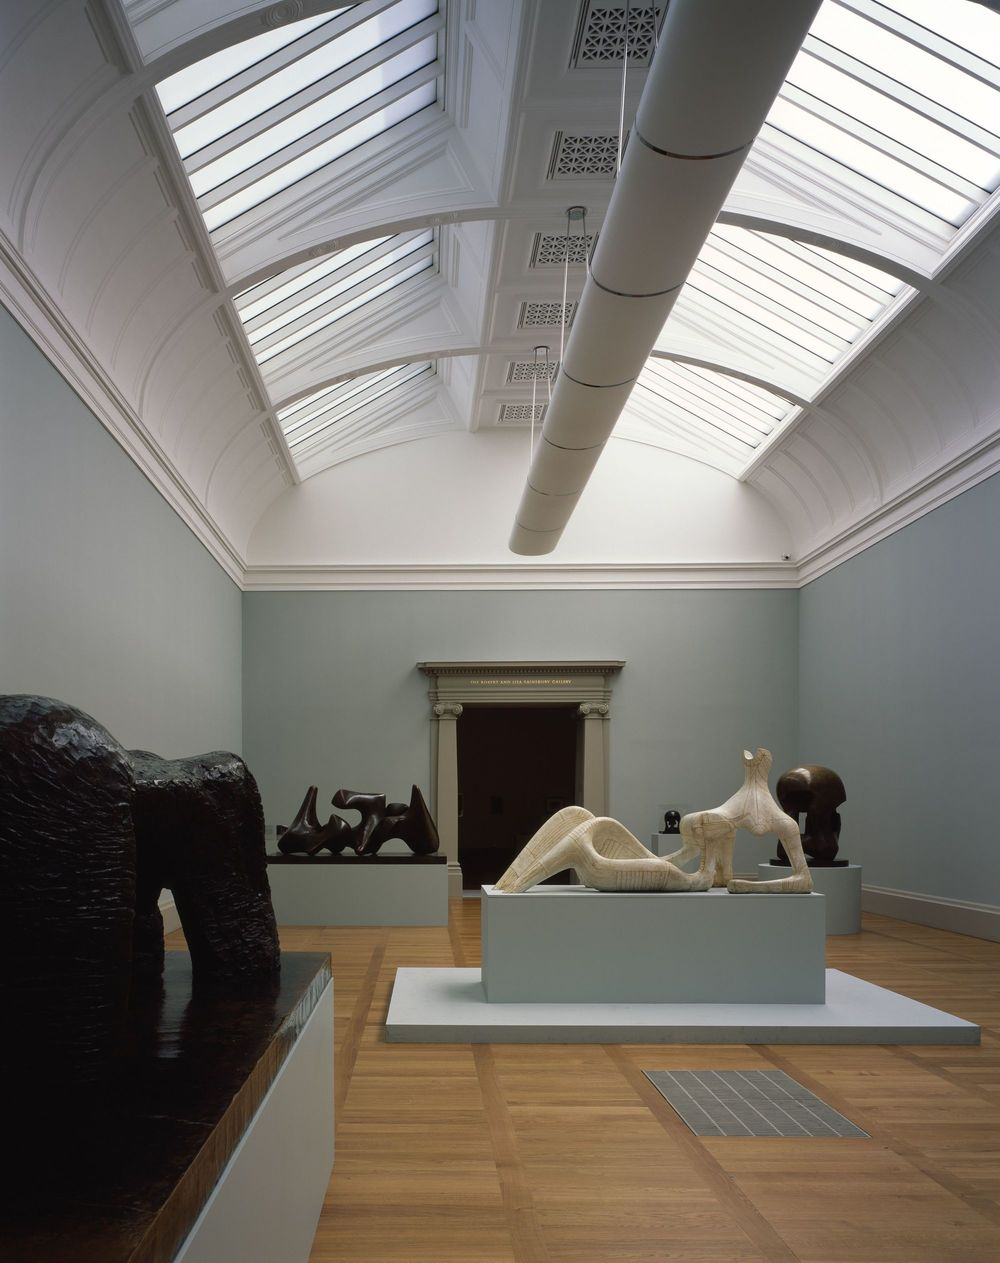 The Architects Choice_critical-round-up-tate-britain-renovation-caruso-st-john_04_south_east_quadrant_gallery_-c-_helene_binet.jpg